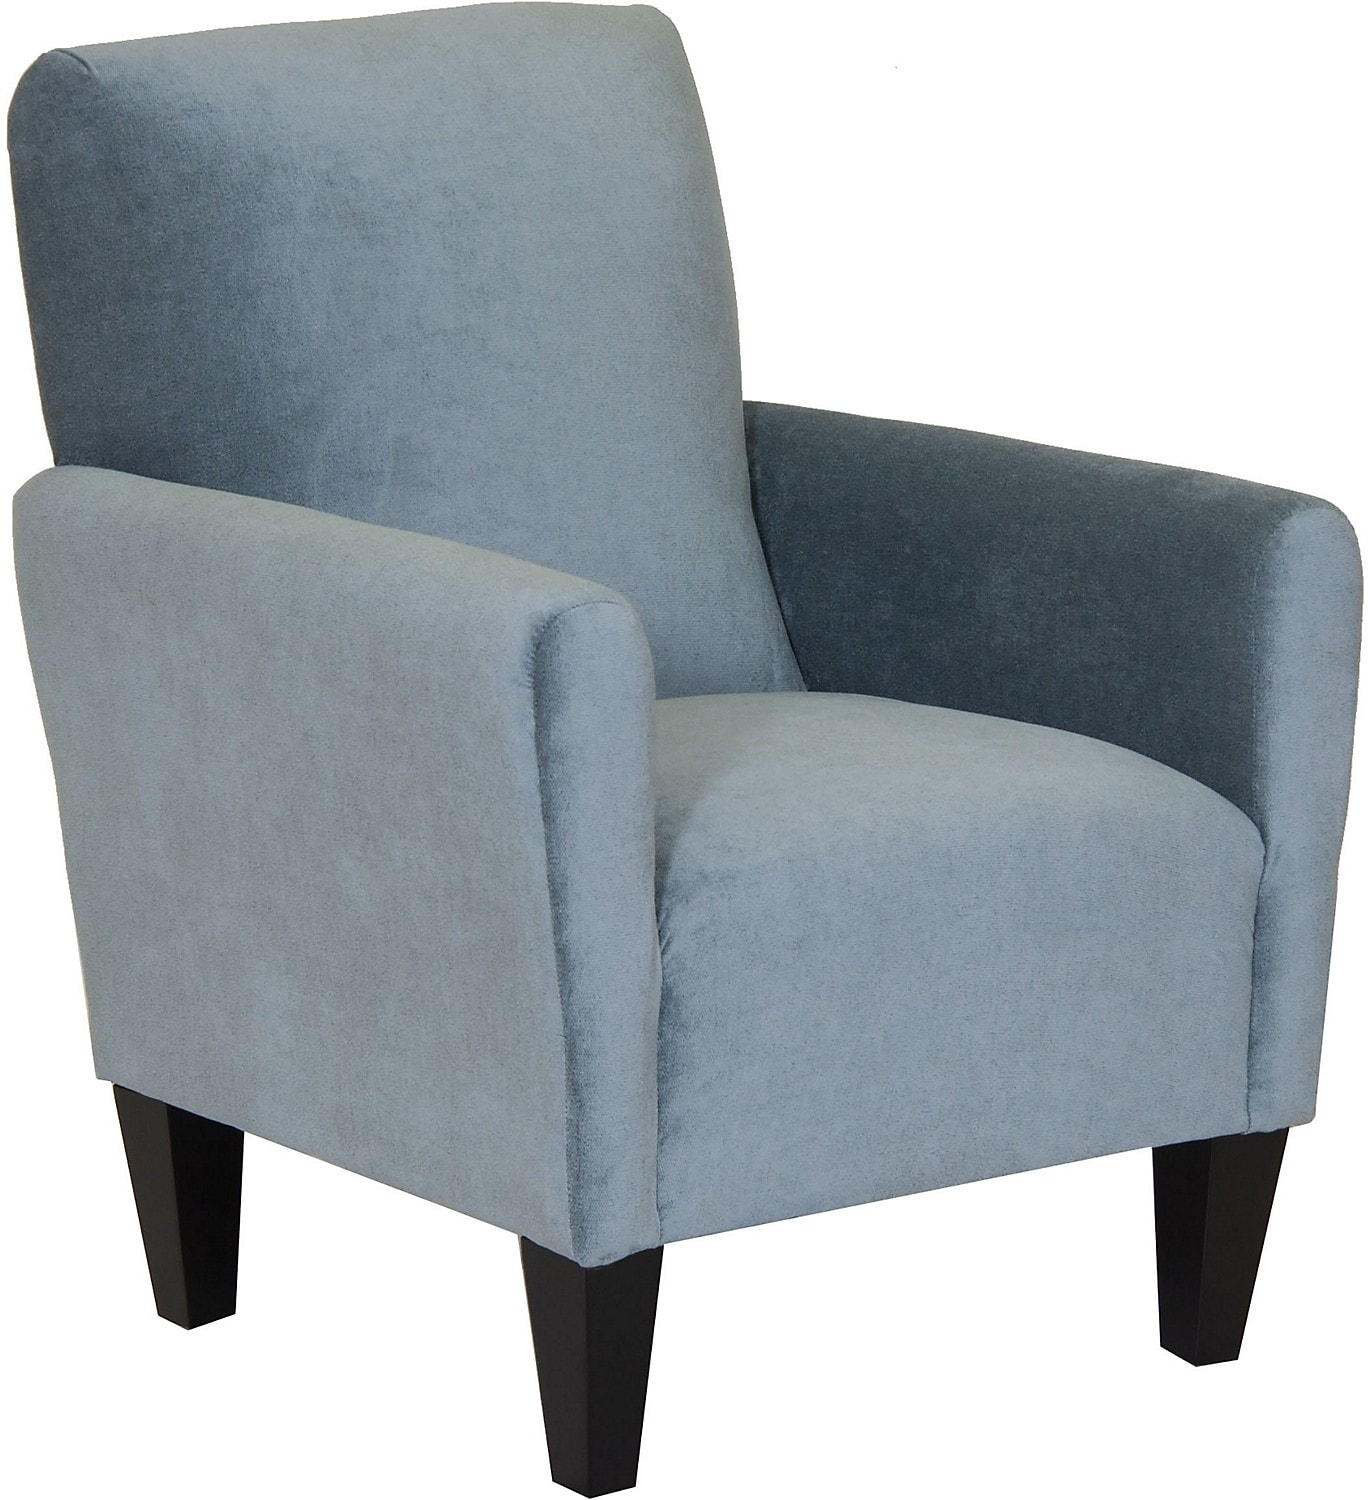 Designed2B Chenille Accent Club Chair - Breeze